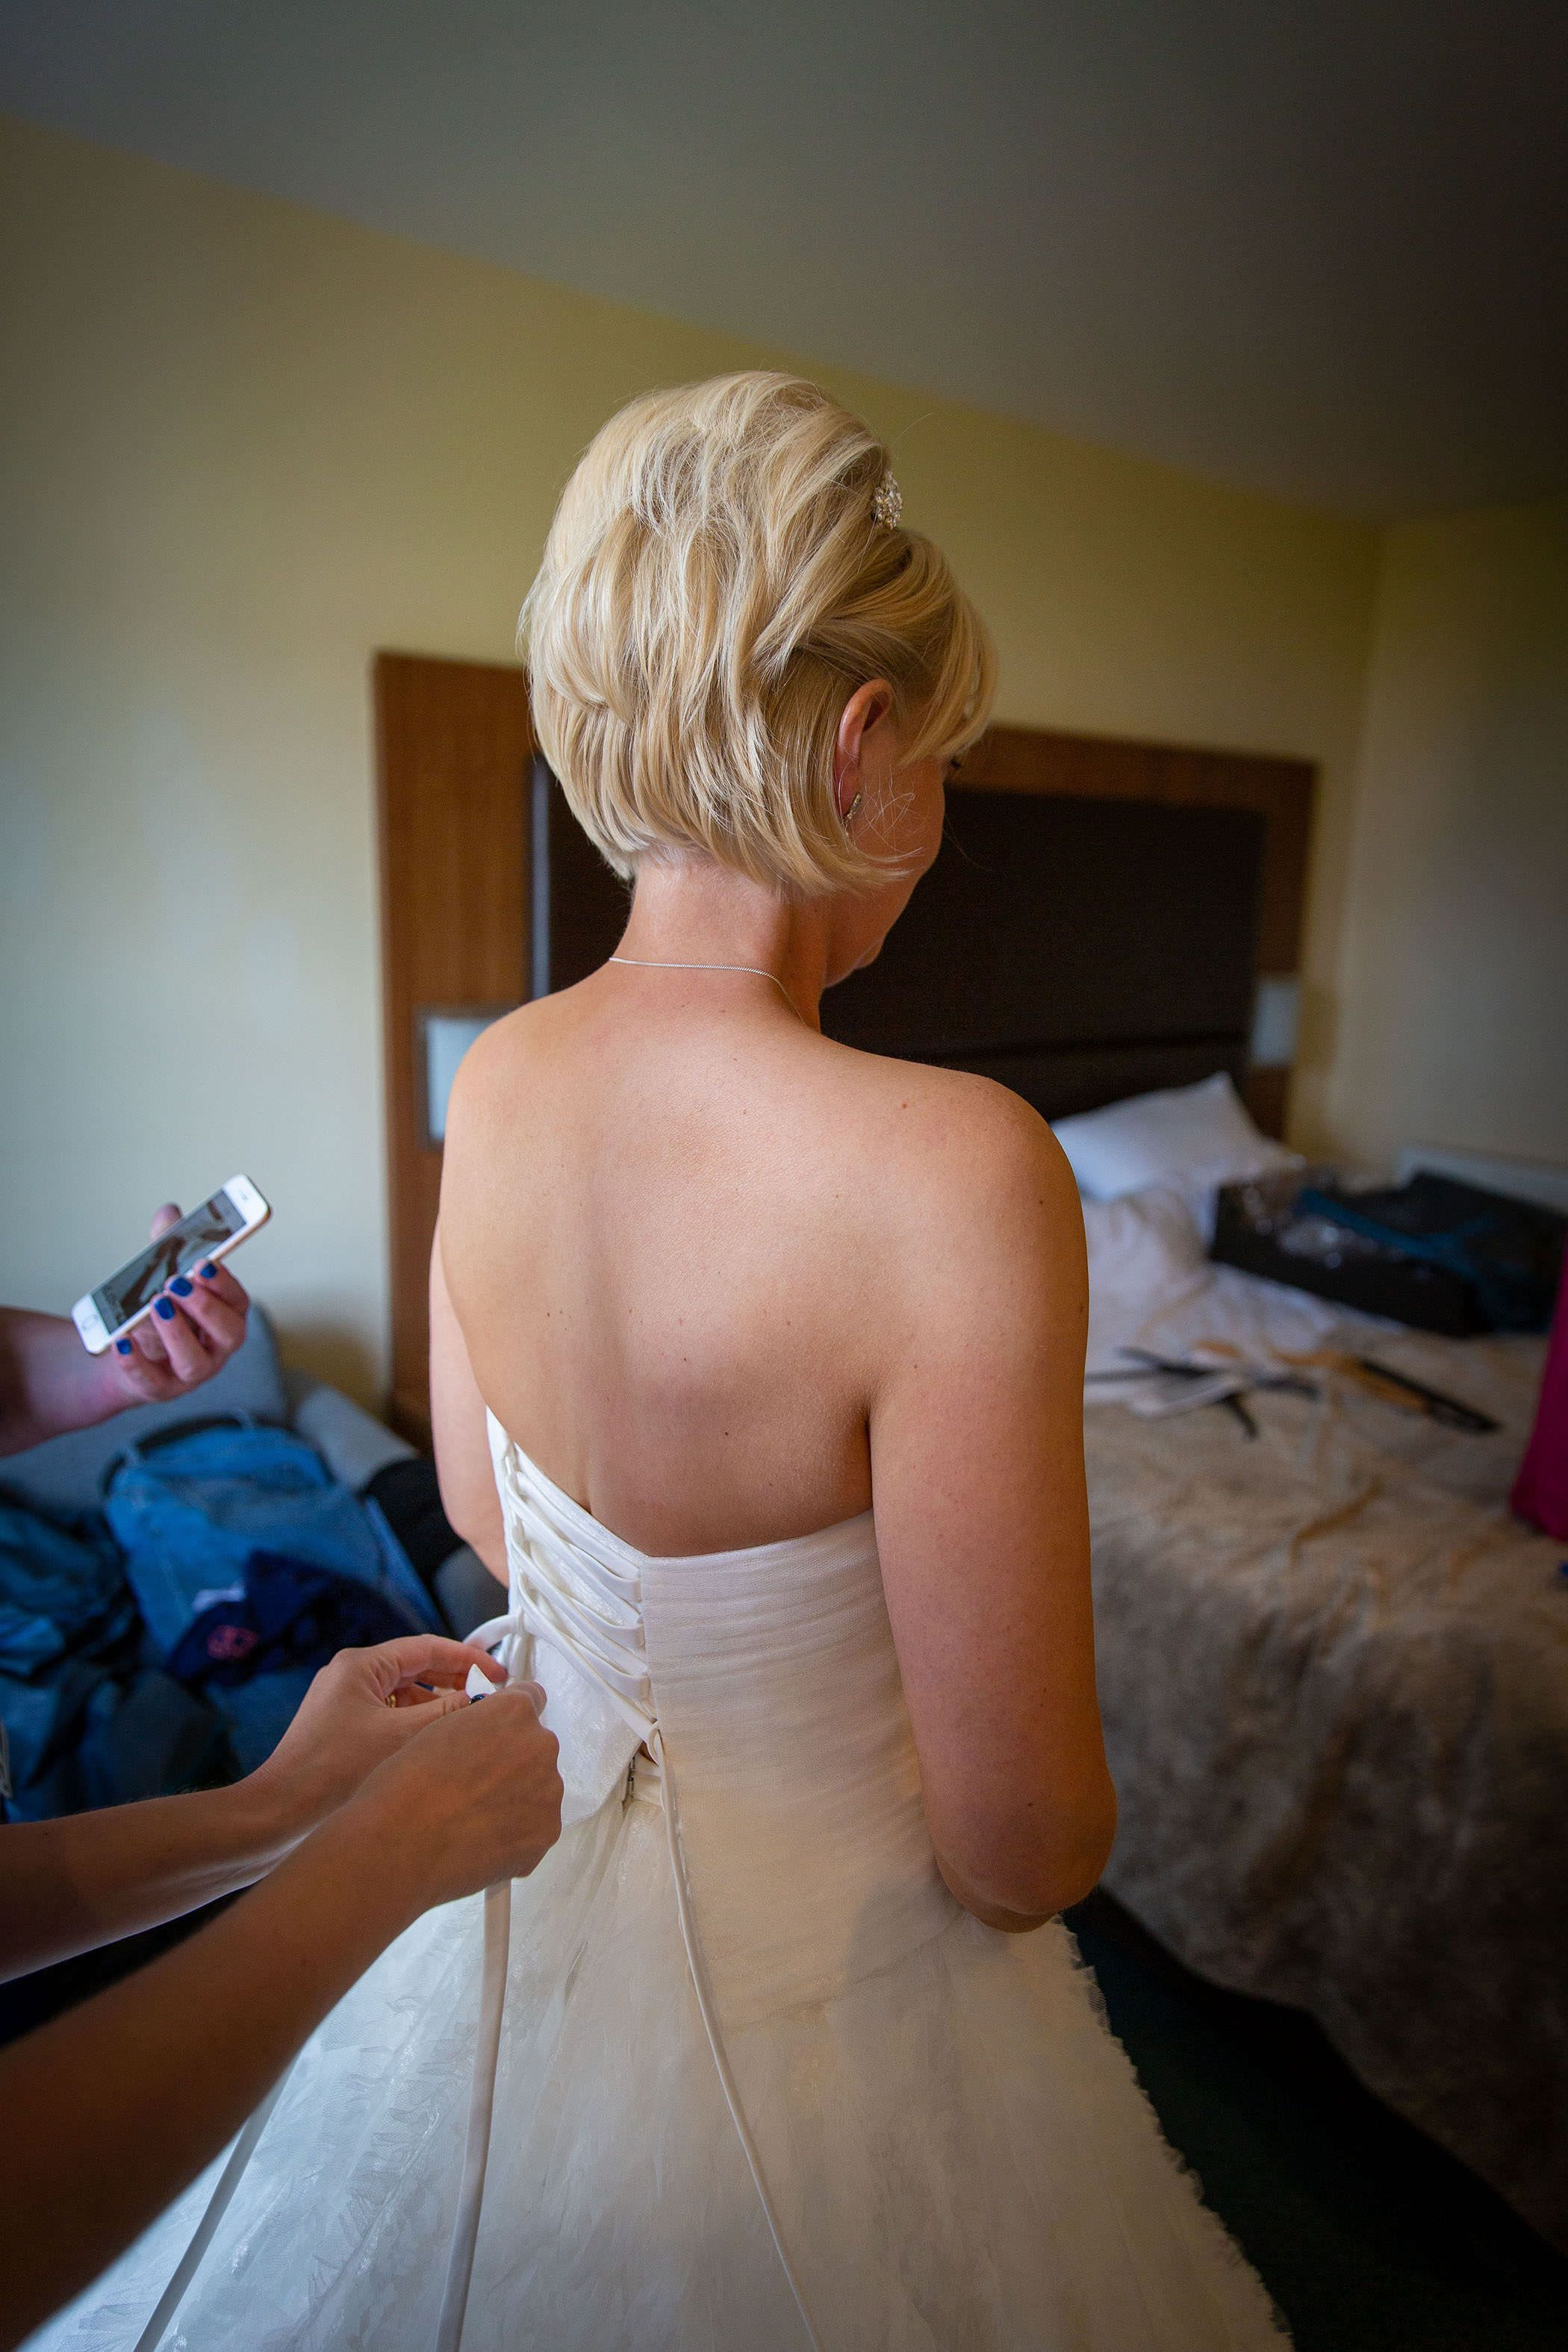 the tieing up of the wedding dress